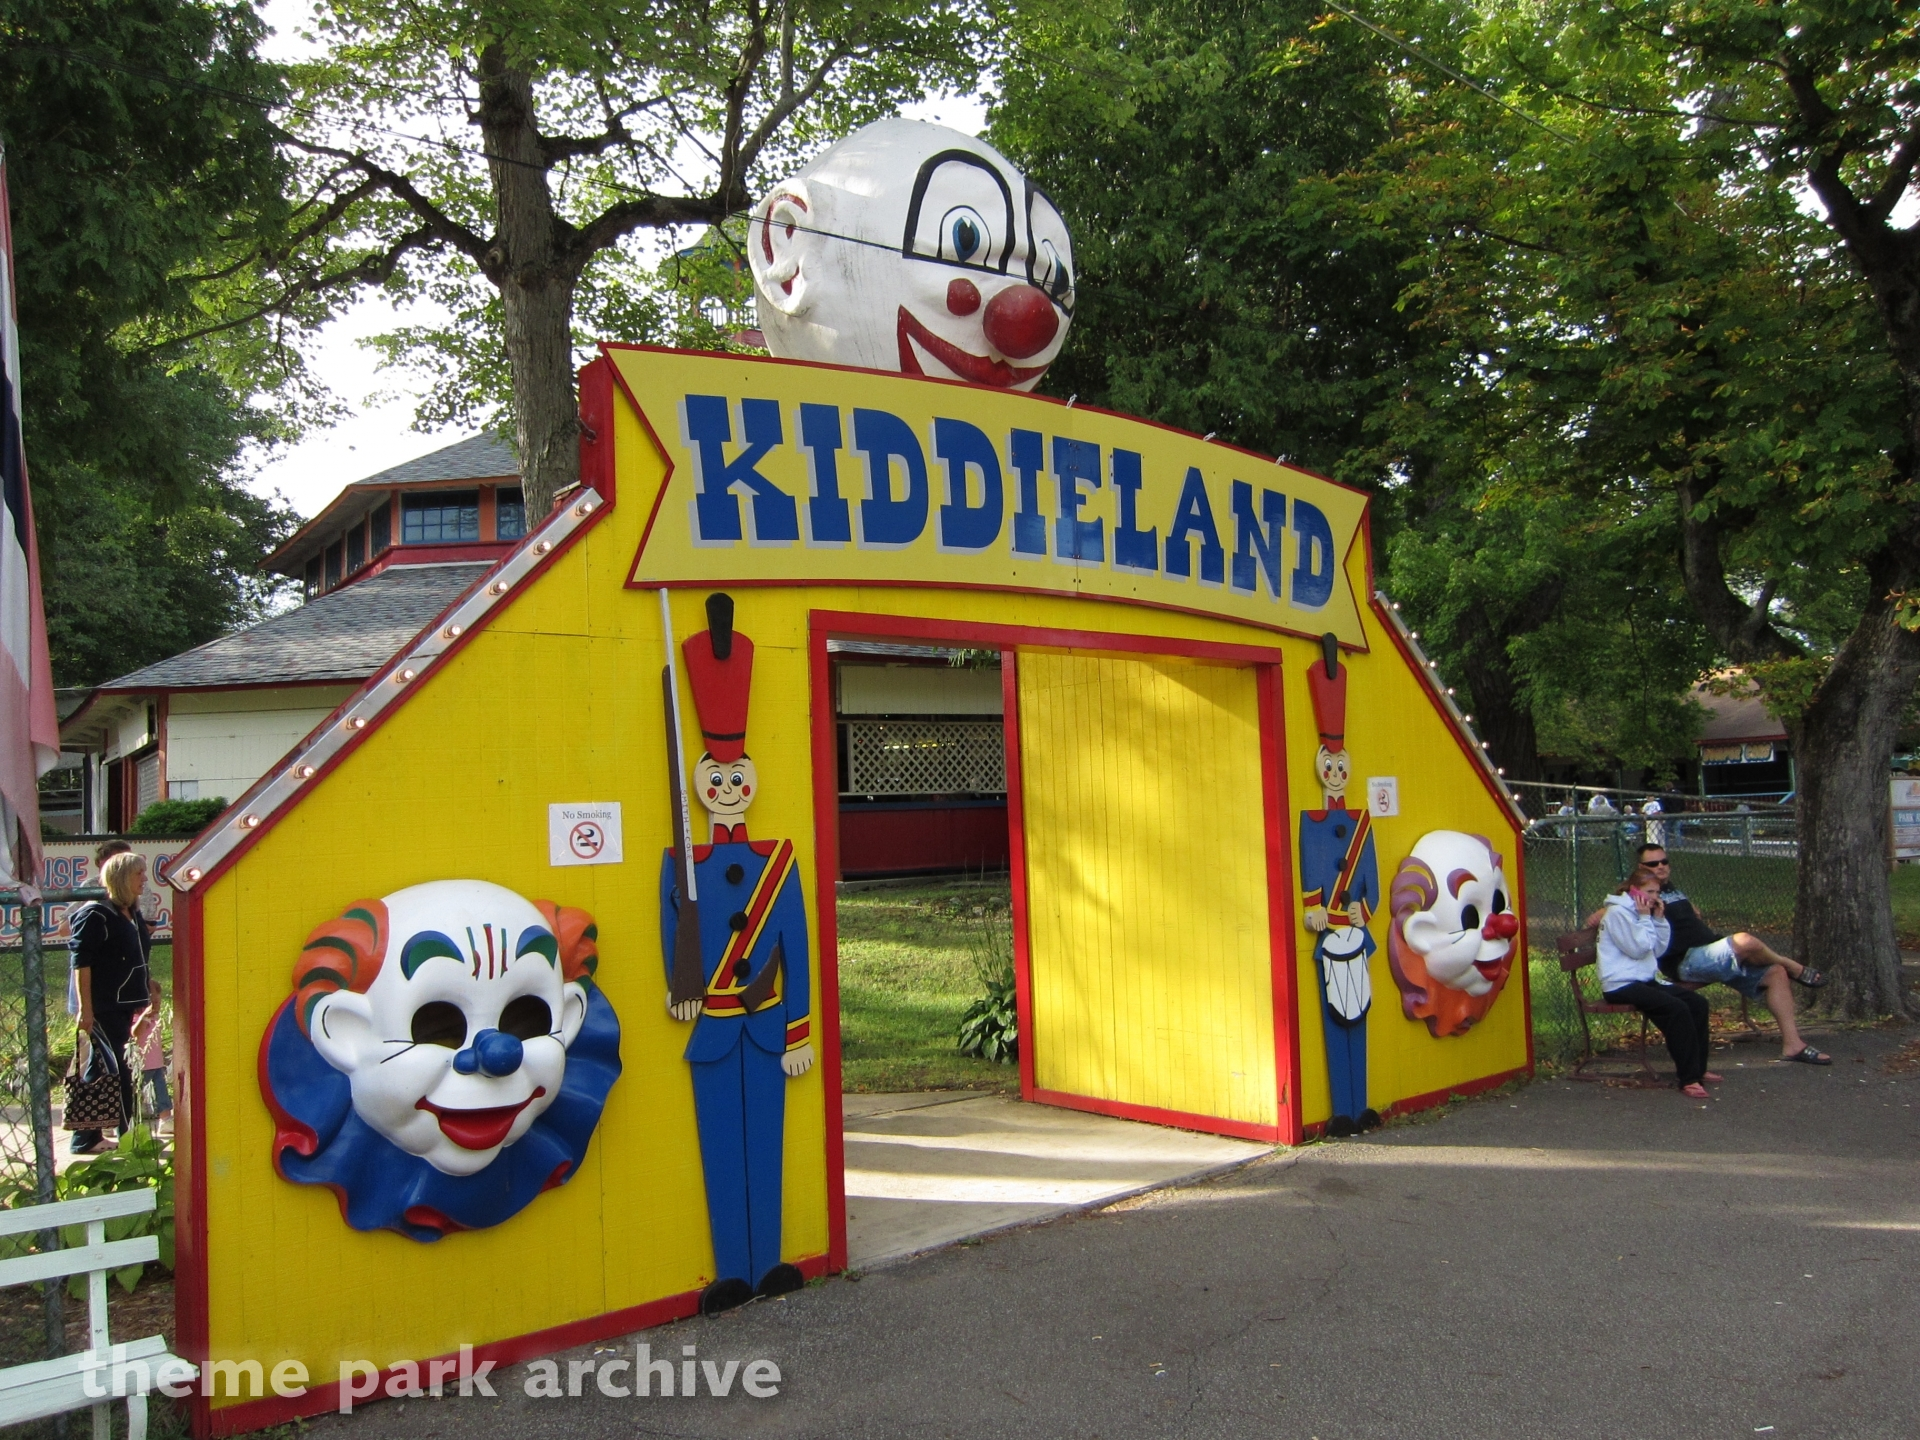 Kiddieland at Conneaut Lake Park